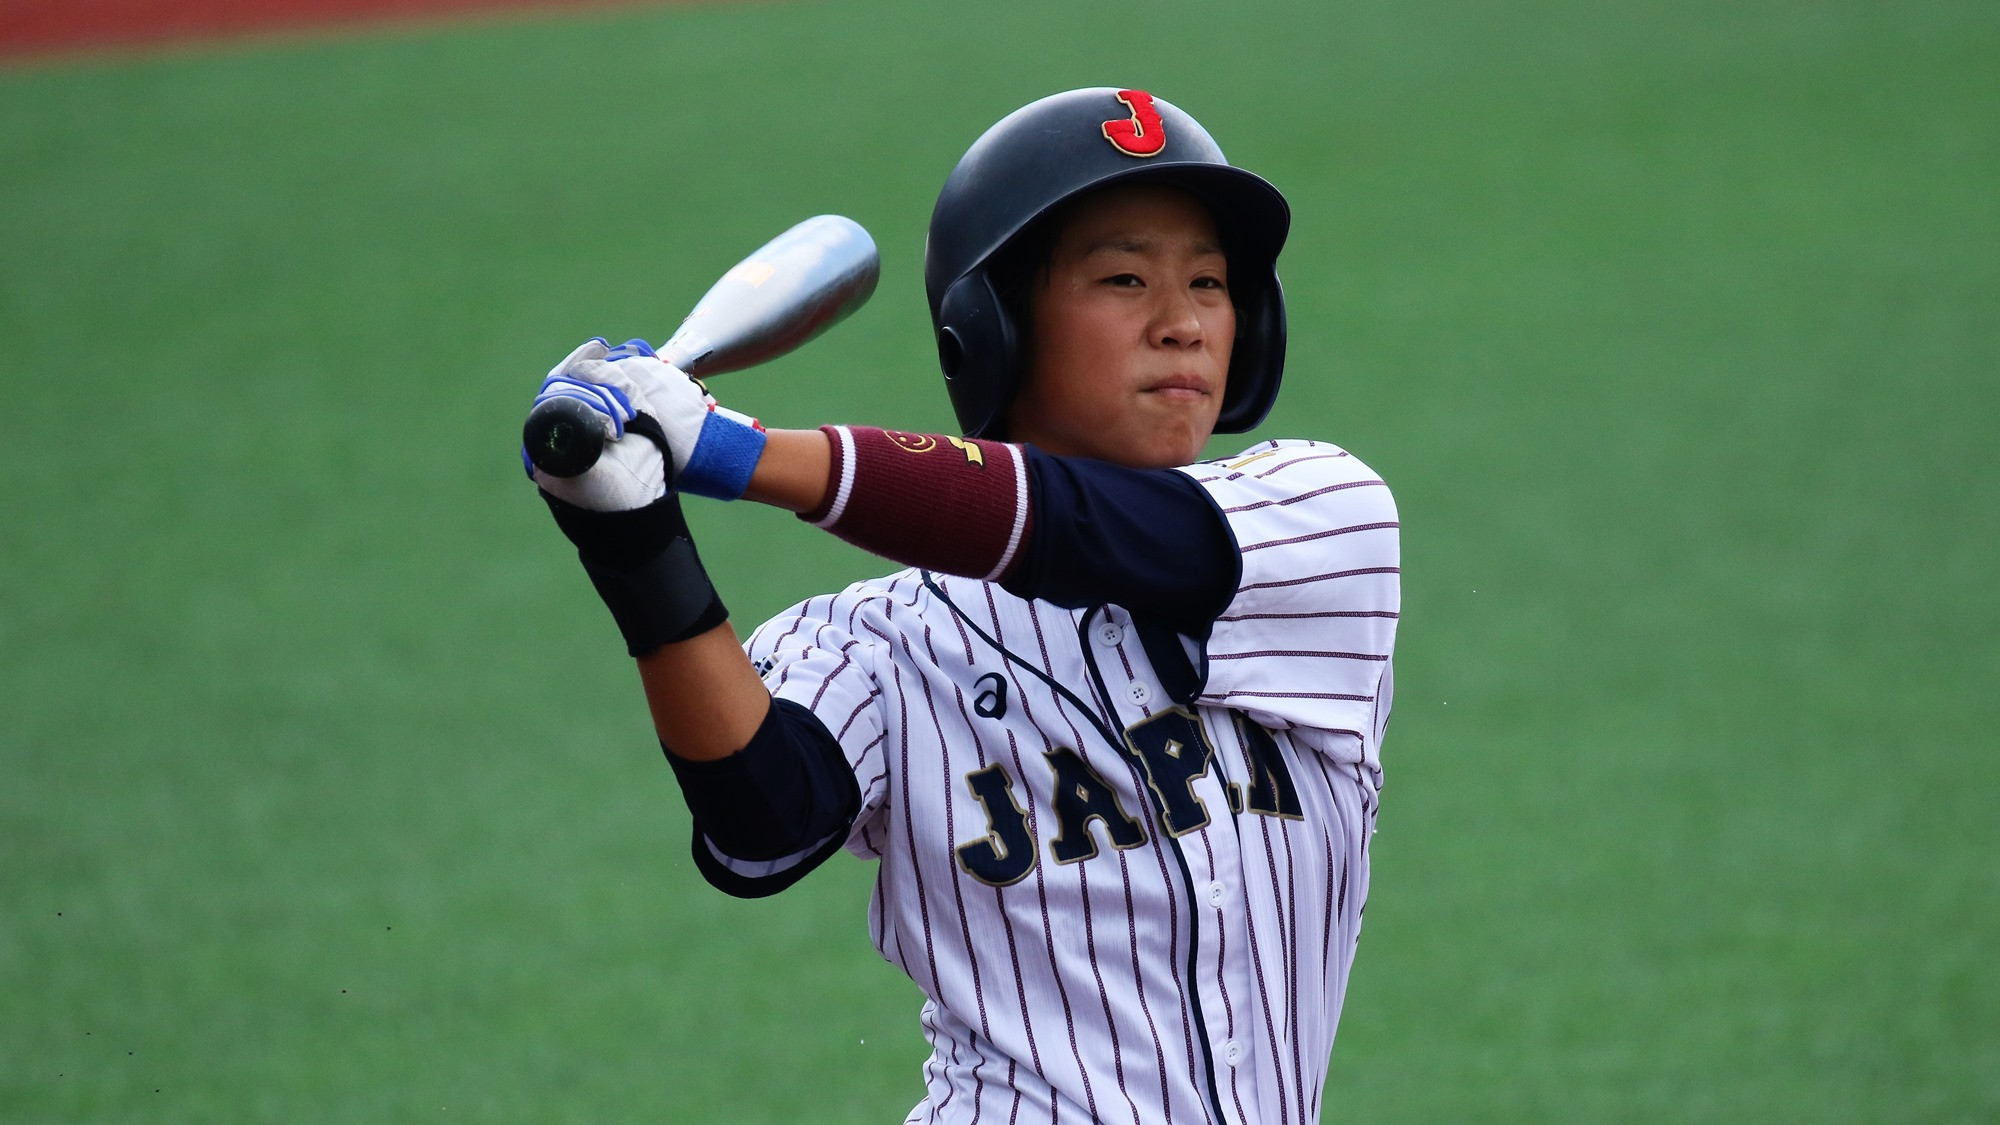 Chinese Taipei to face Japan in final at Women's Baseball World Cup